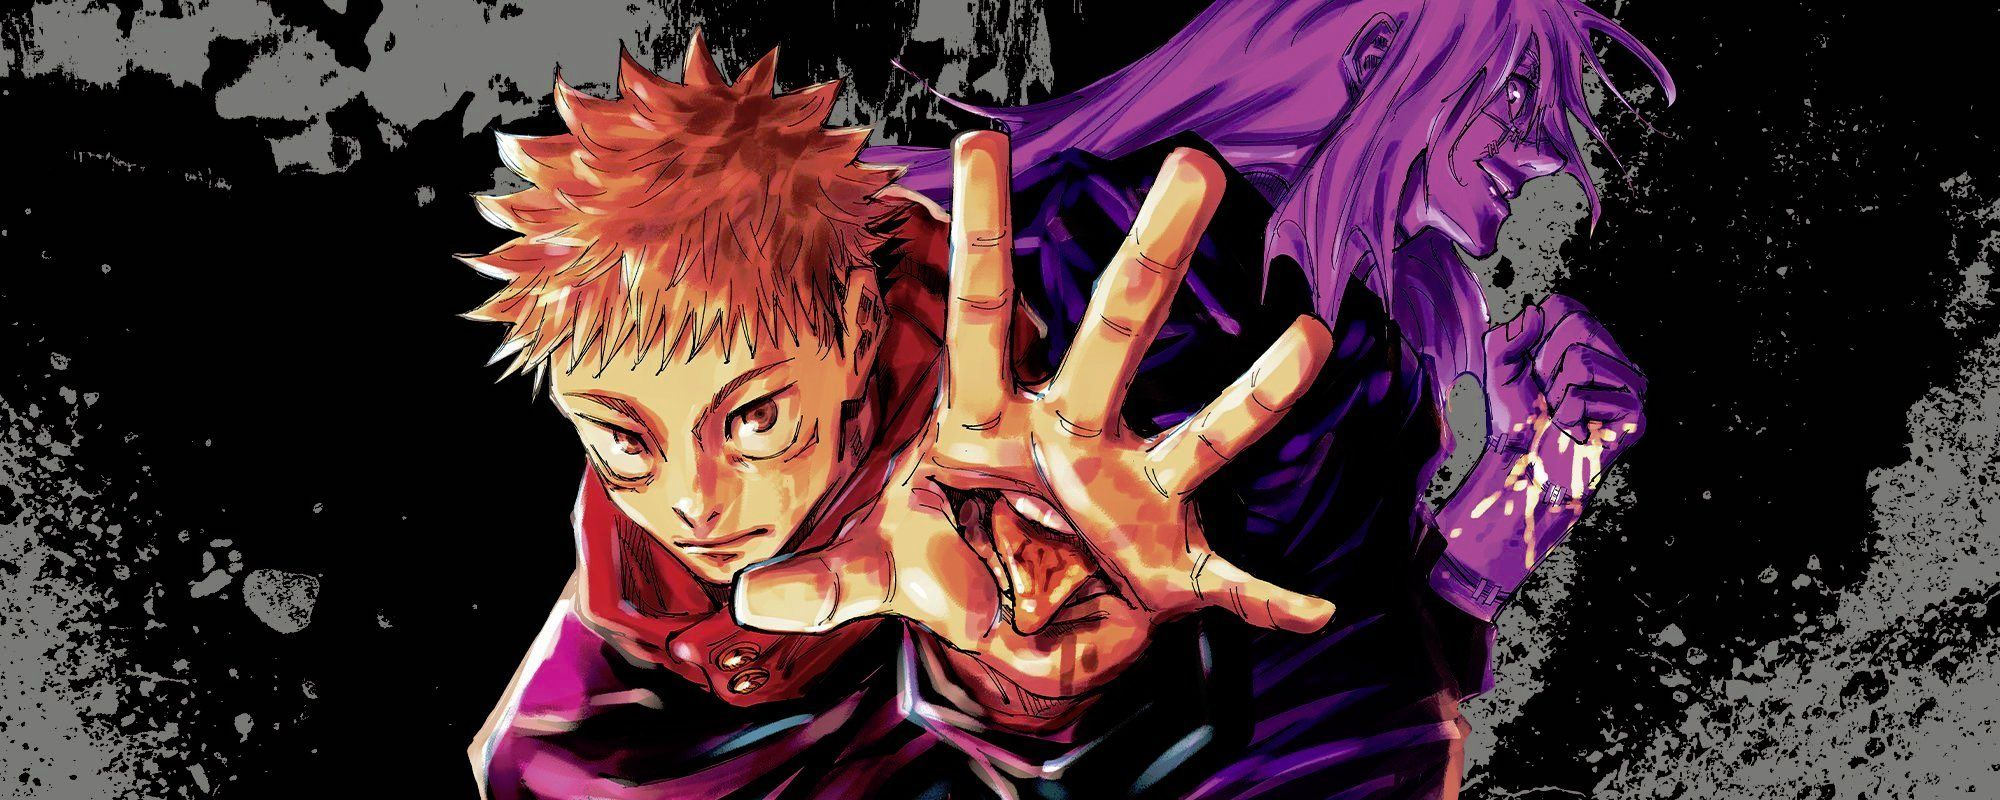 Jujutsu Kaisen On Twitter In 2021 Cute Headers Cute Headers For Twitter Anime Cover Photo